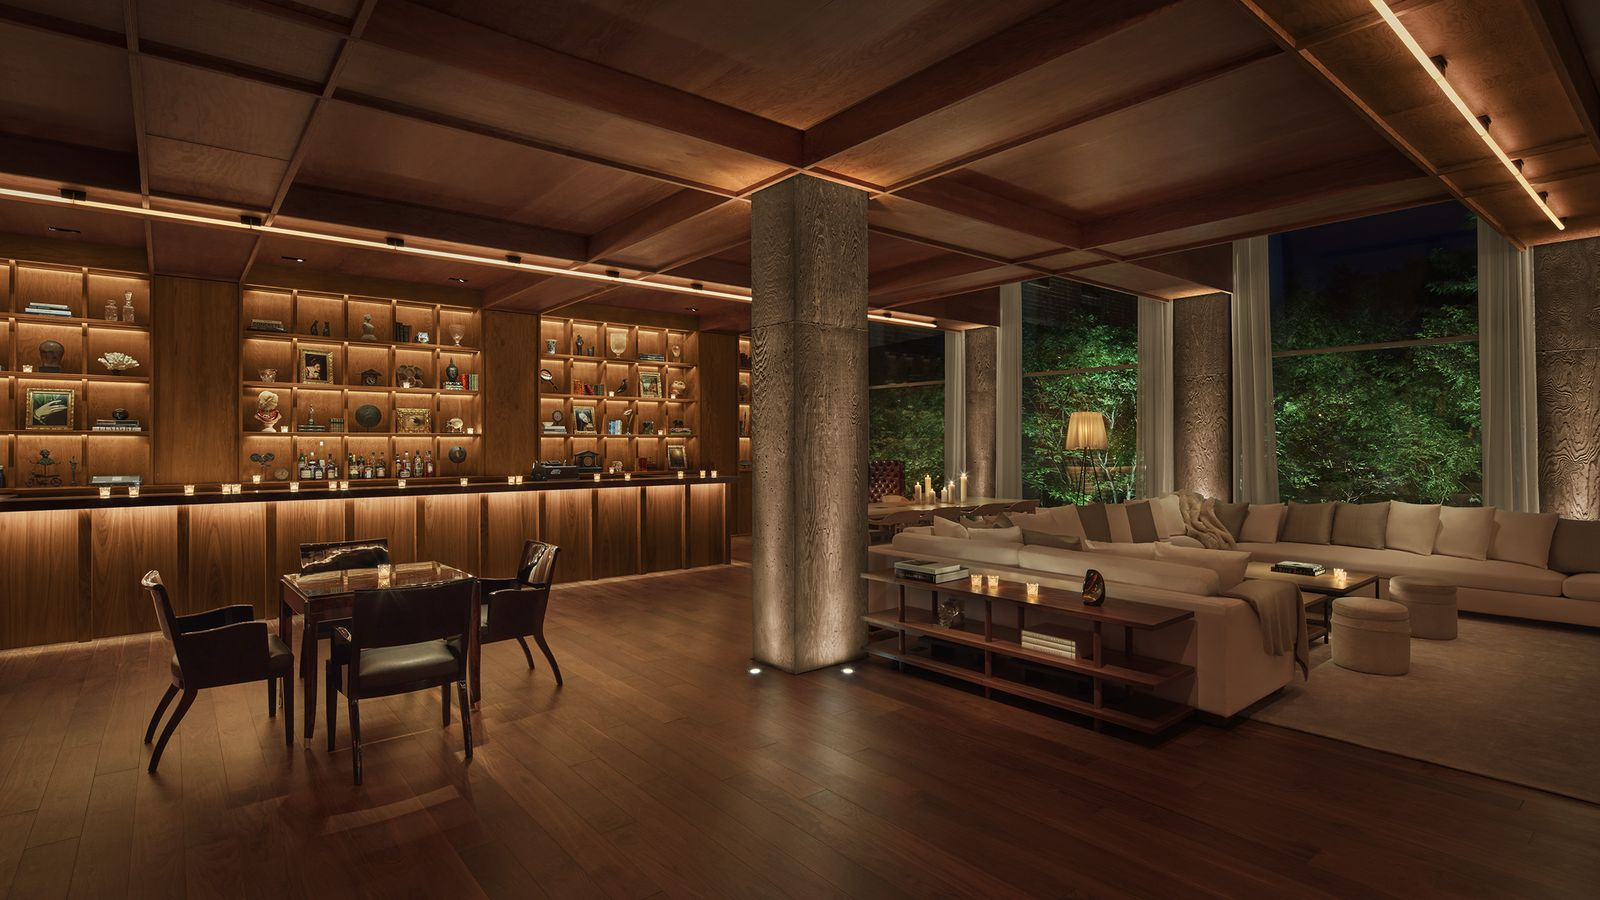 Ian Schrager S Public Hotel Opens On The Lower East Side